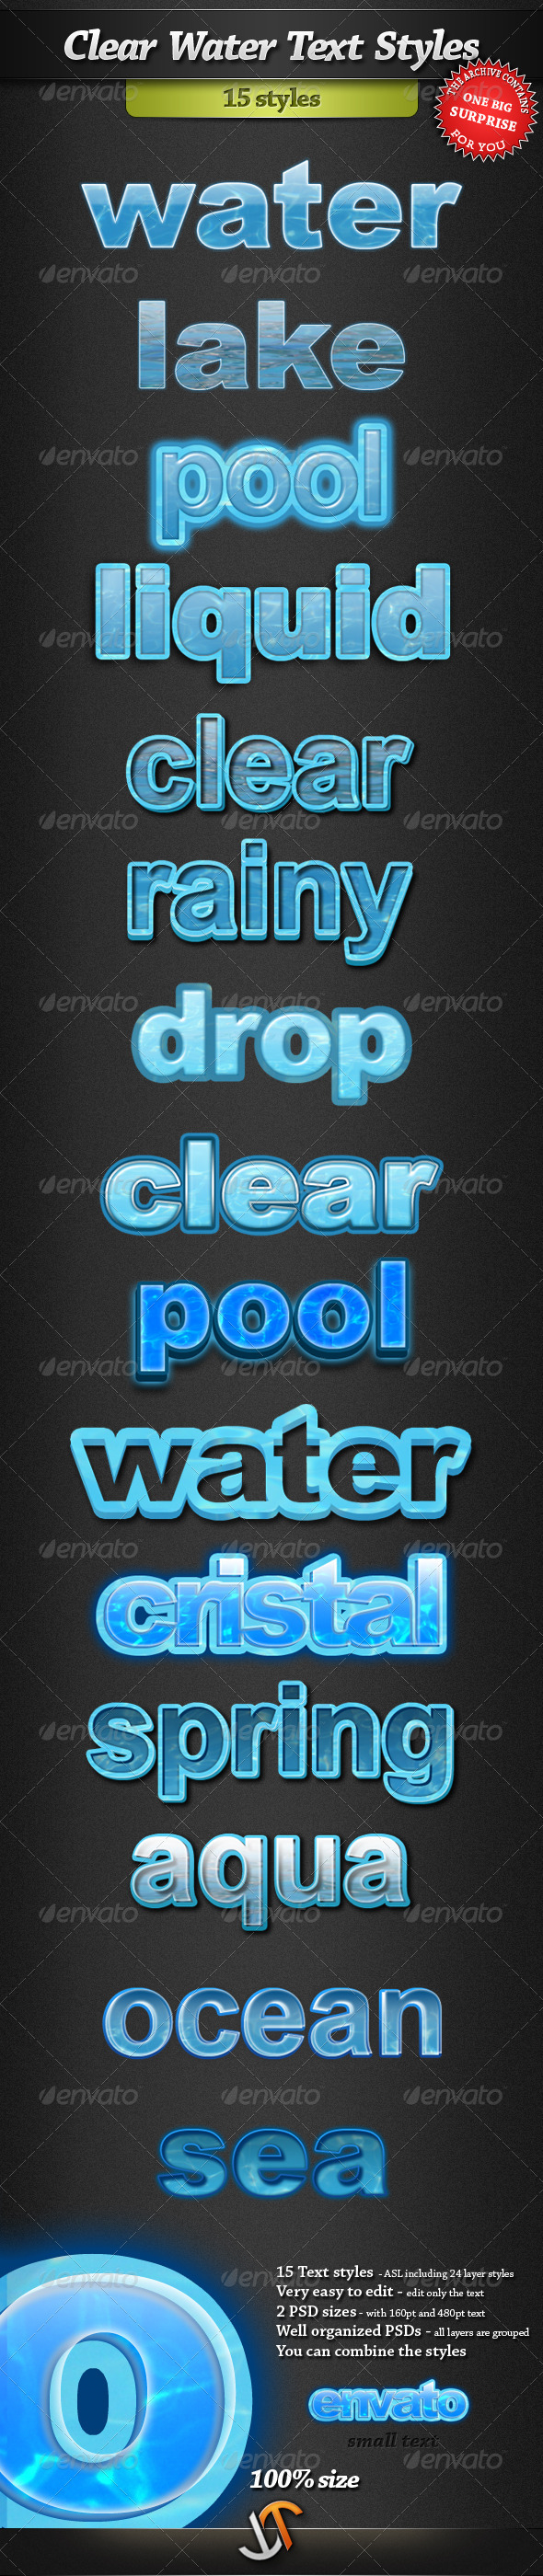 Graphic River Clear Water Text Styles Add-ons -  Photoshop  Styles  Text Effects 398484